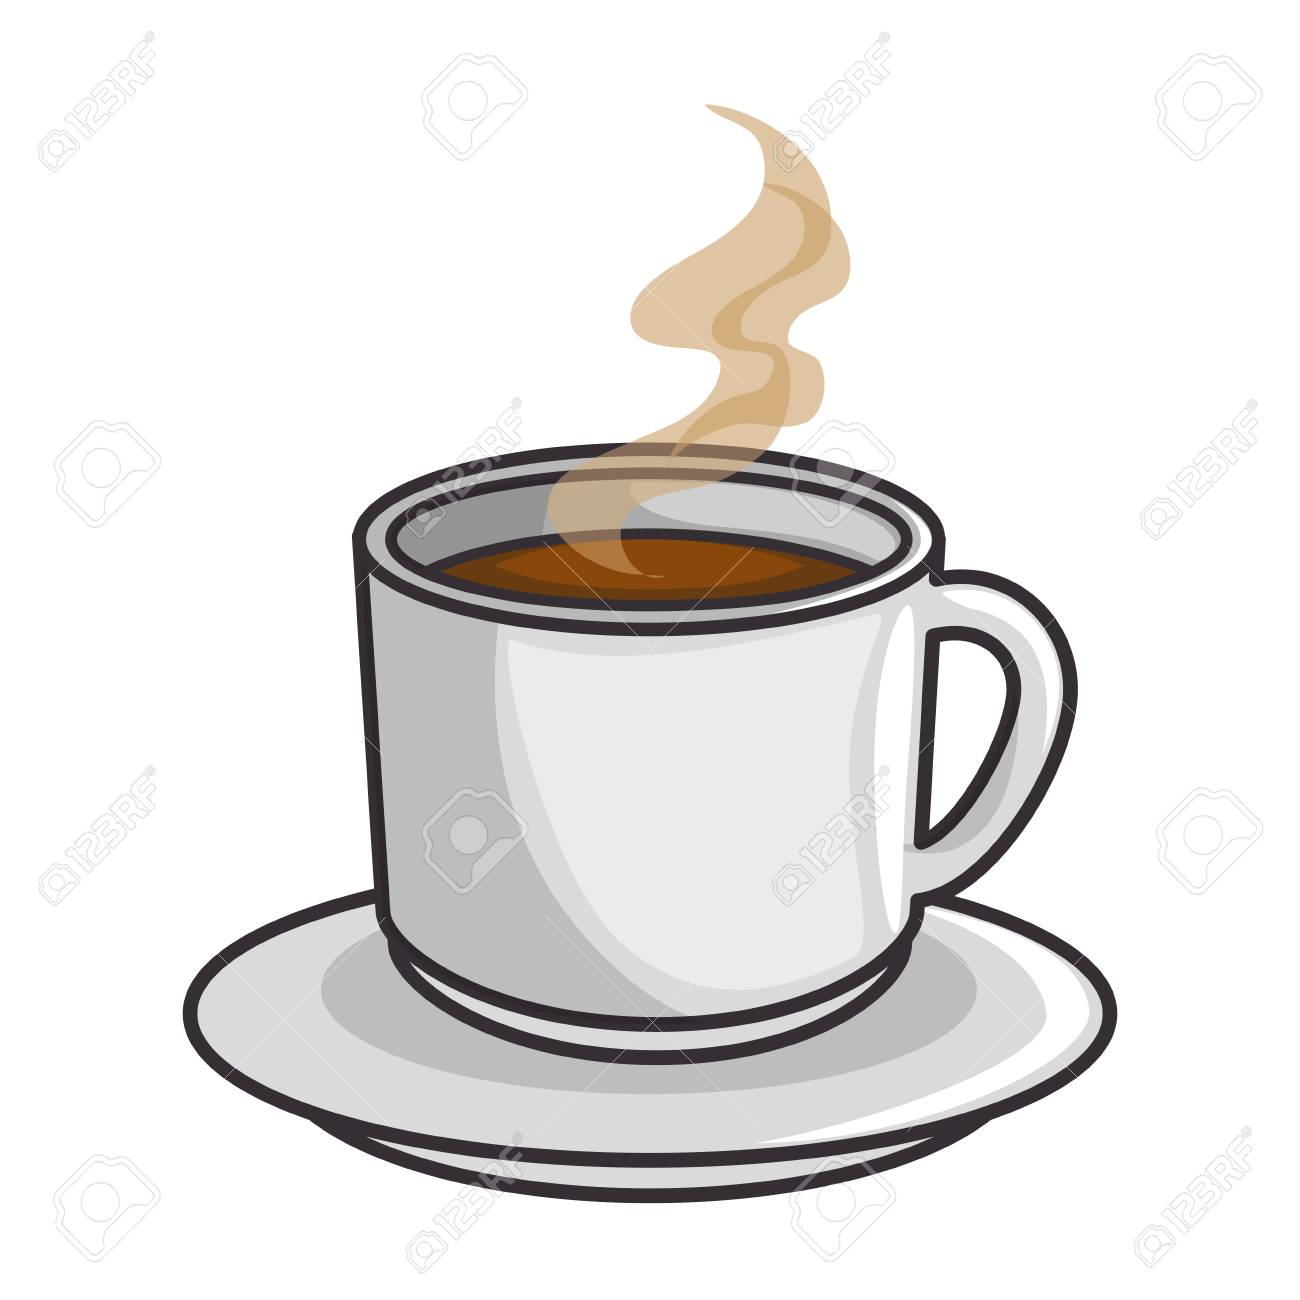 3cae3dde344 hot coffee mug icon over white background vector illustration Stock Vector  - 84219595